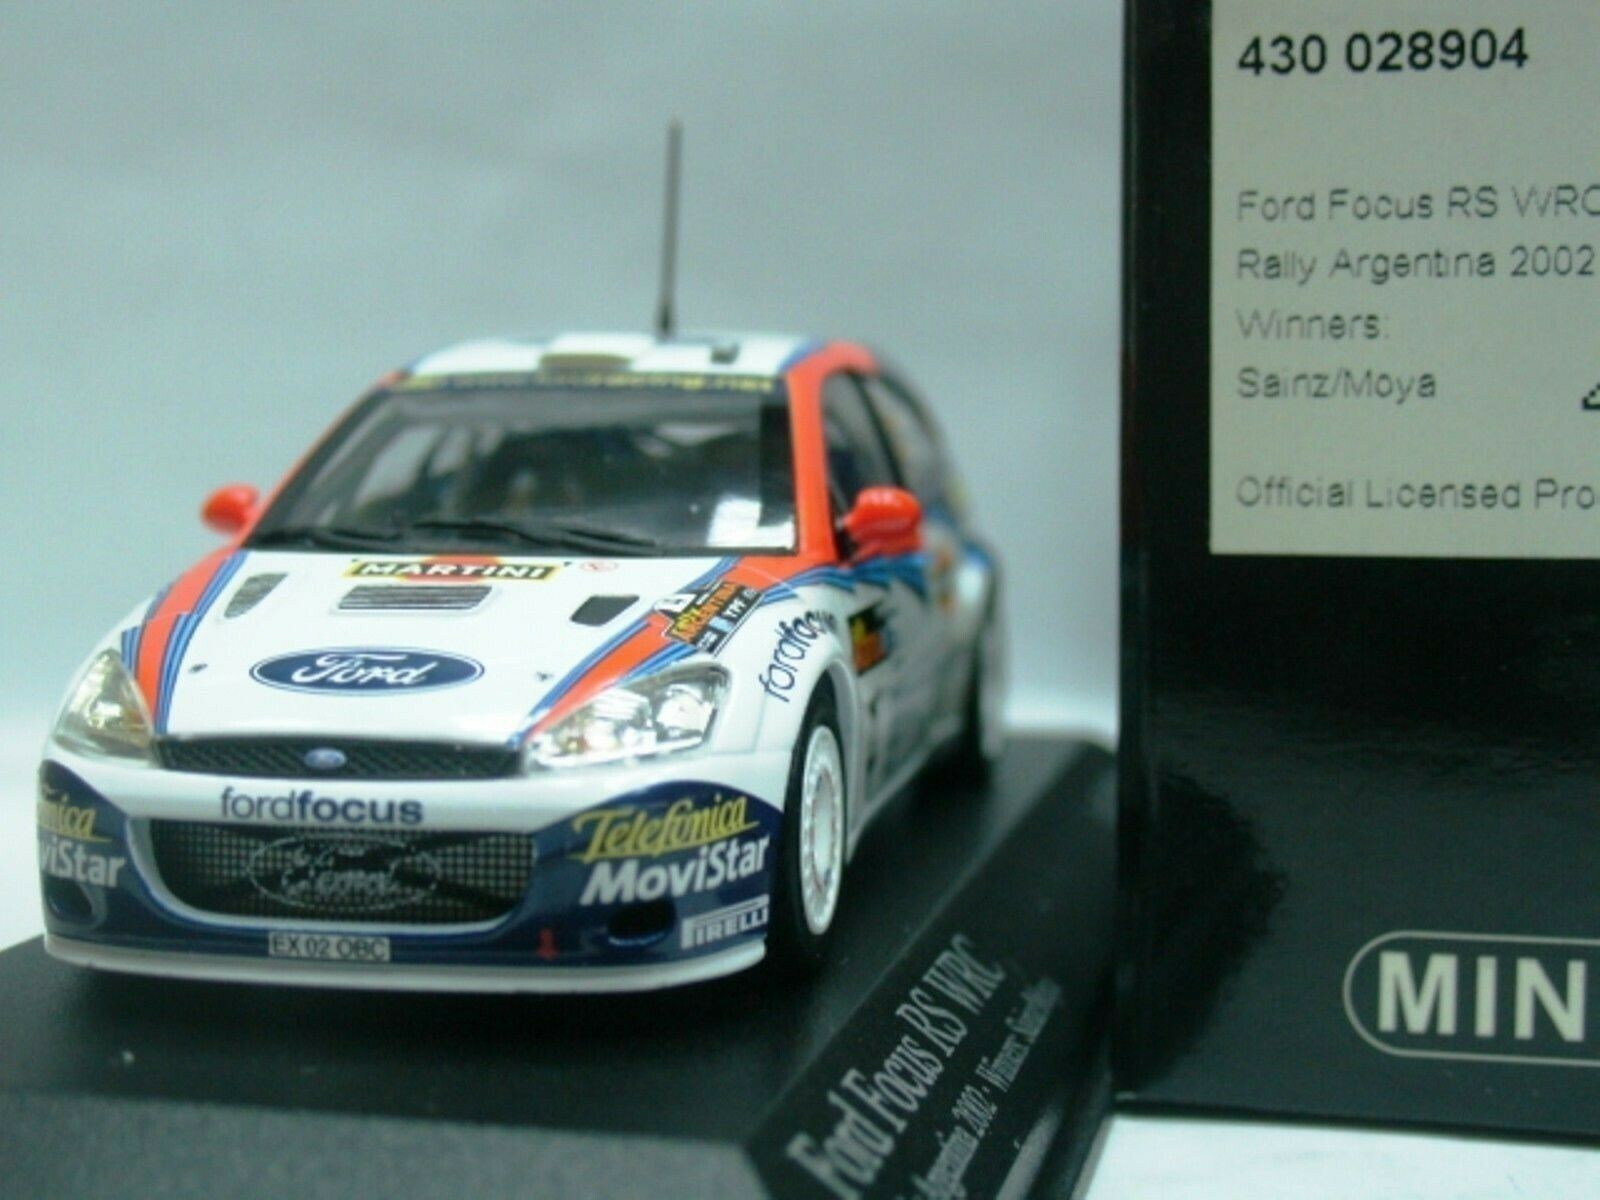 Wow extrêmement rare FORD FOCUS RS WRC 2002  4 Sainz 1st Argentine 1 43 Minichamps